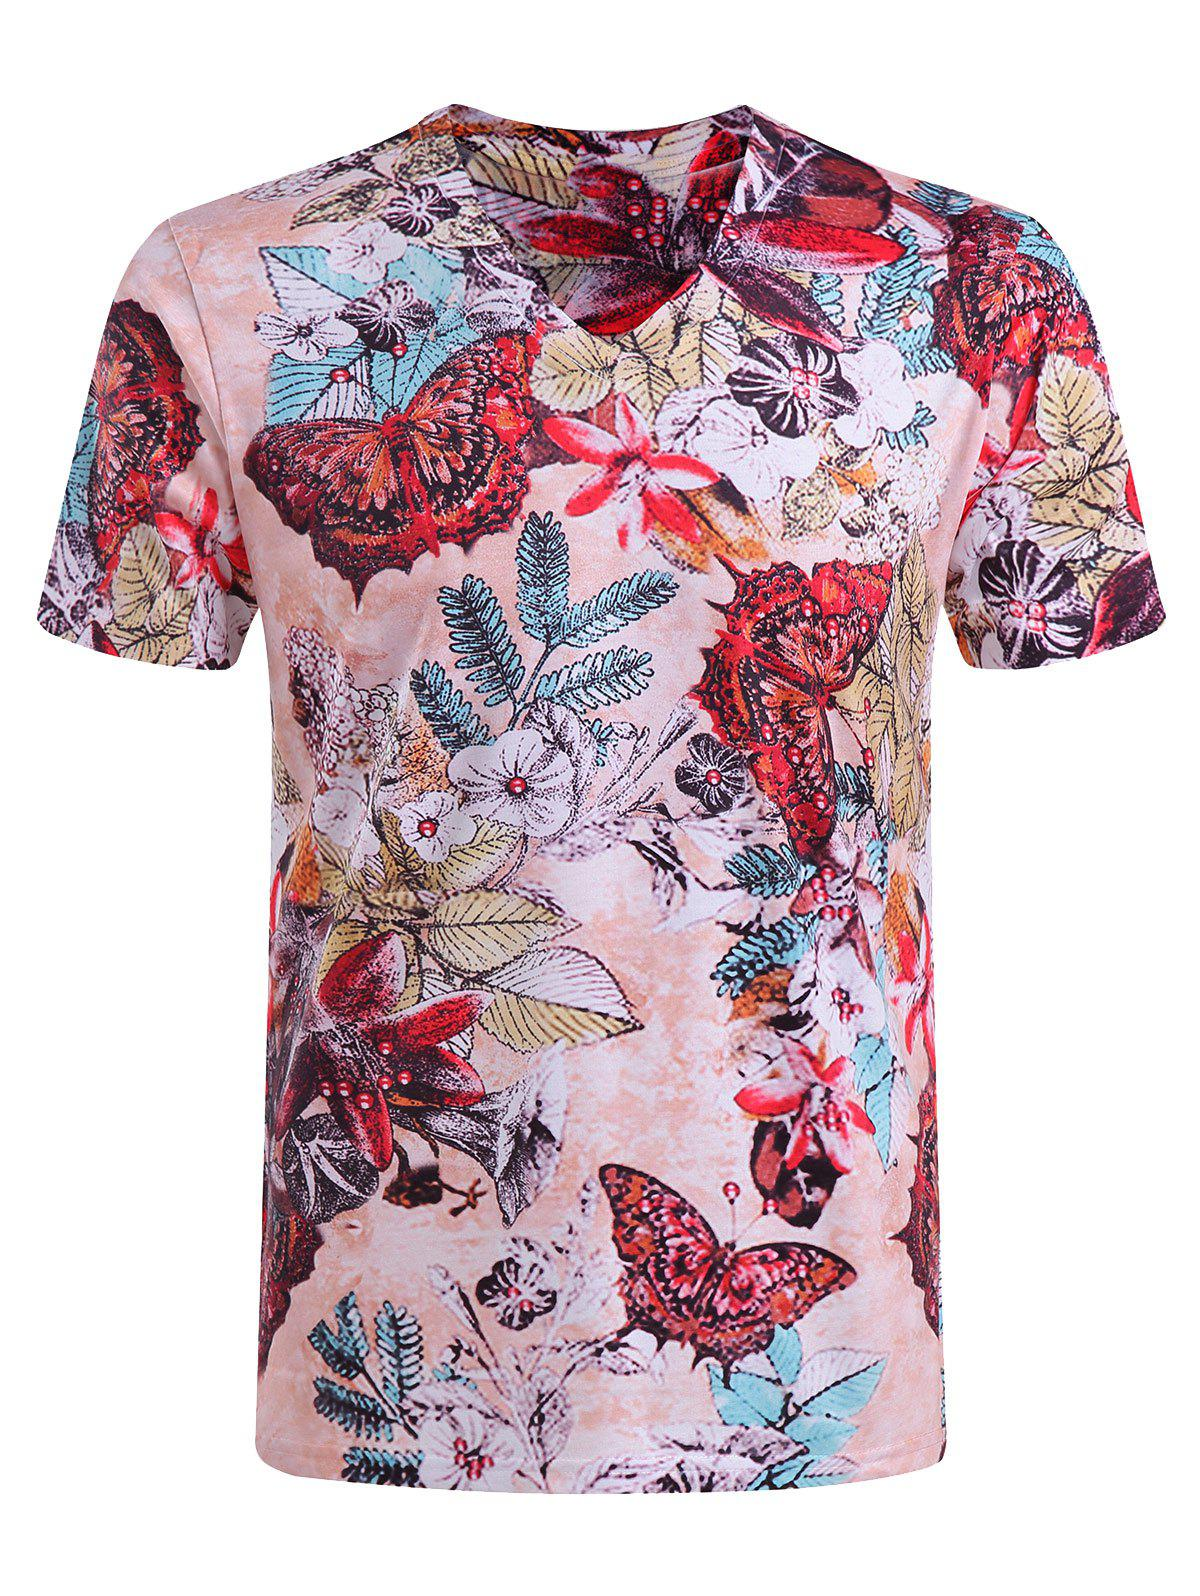 Men's Casual Short Sleeves Butterfly Printed V-Collar T-Shirt - COLORMIX 4XL